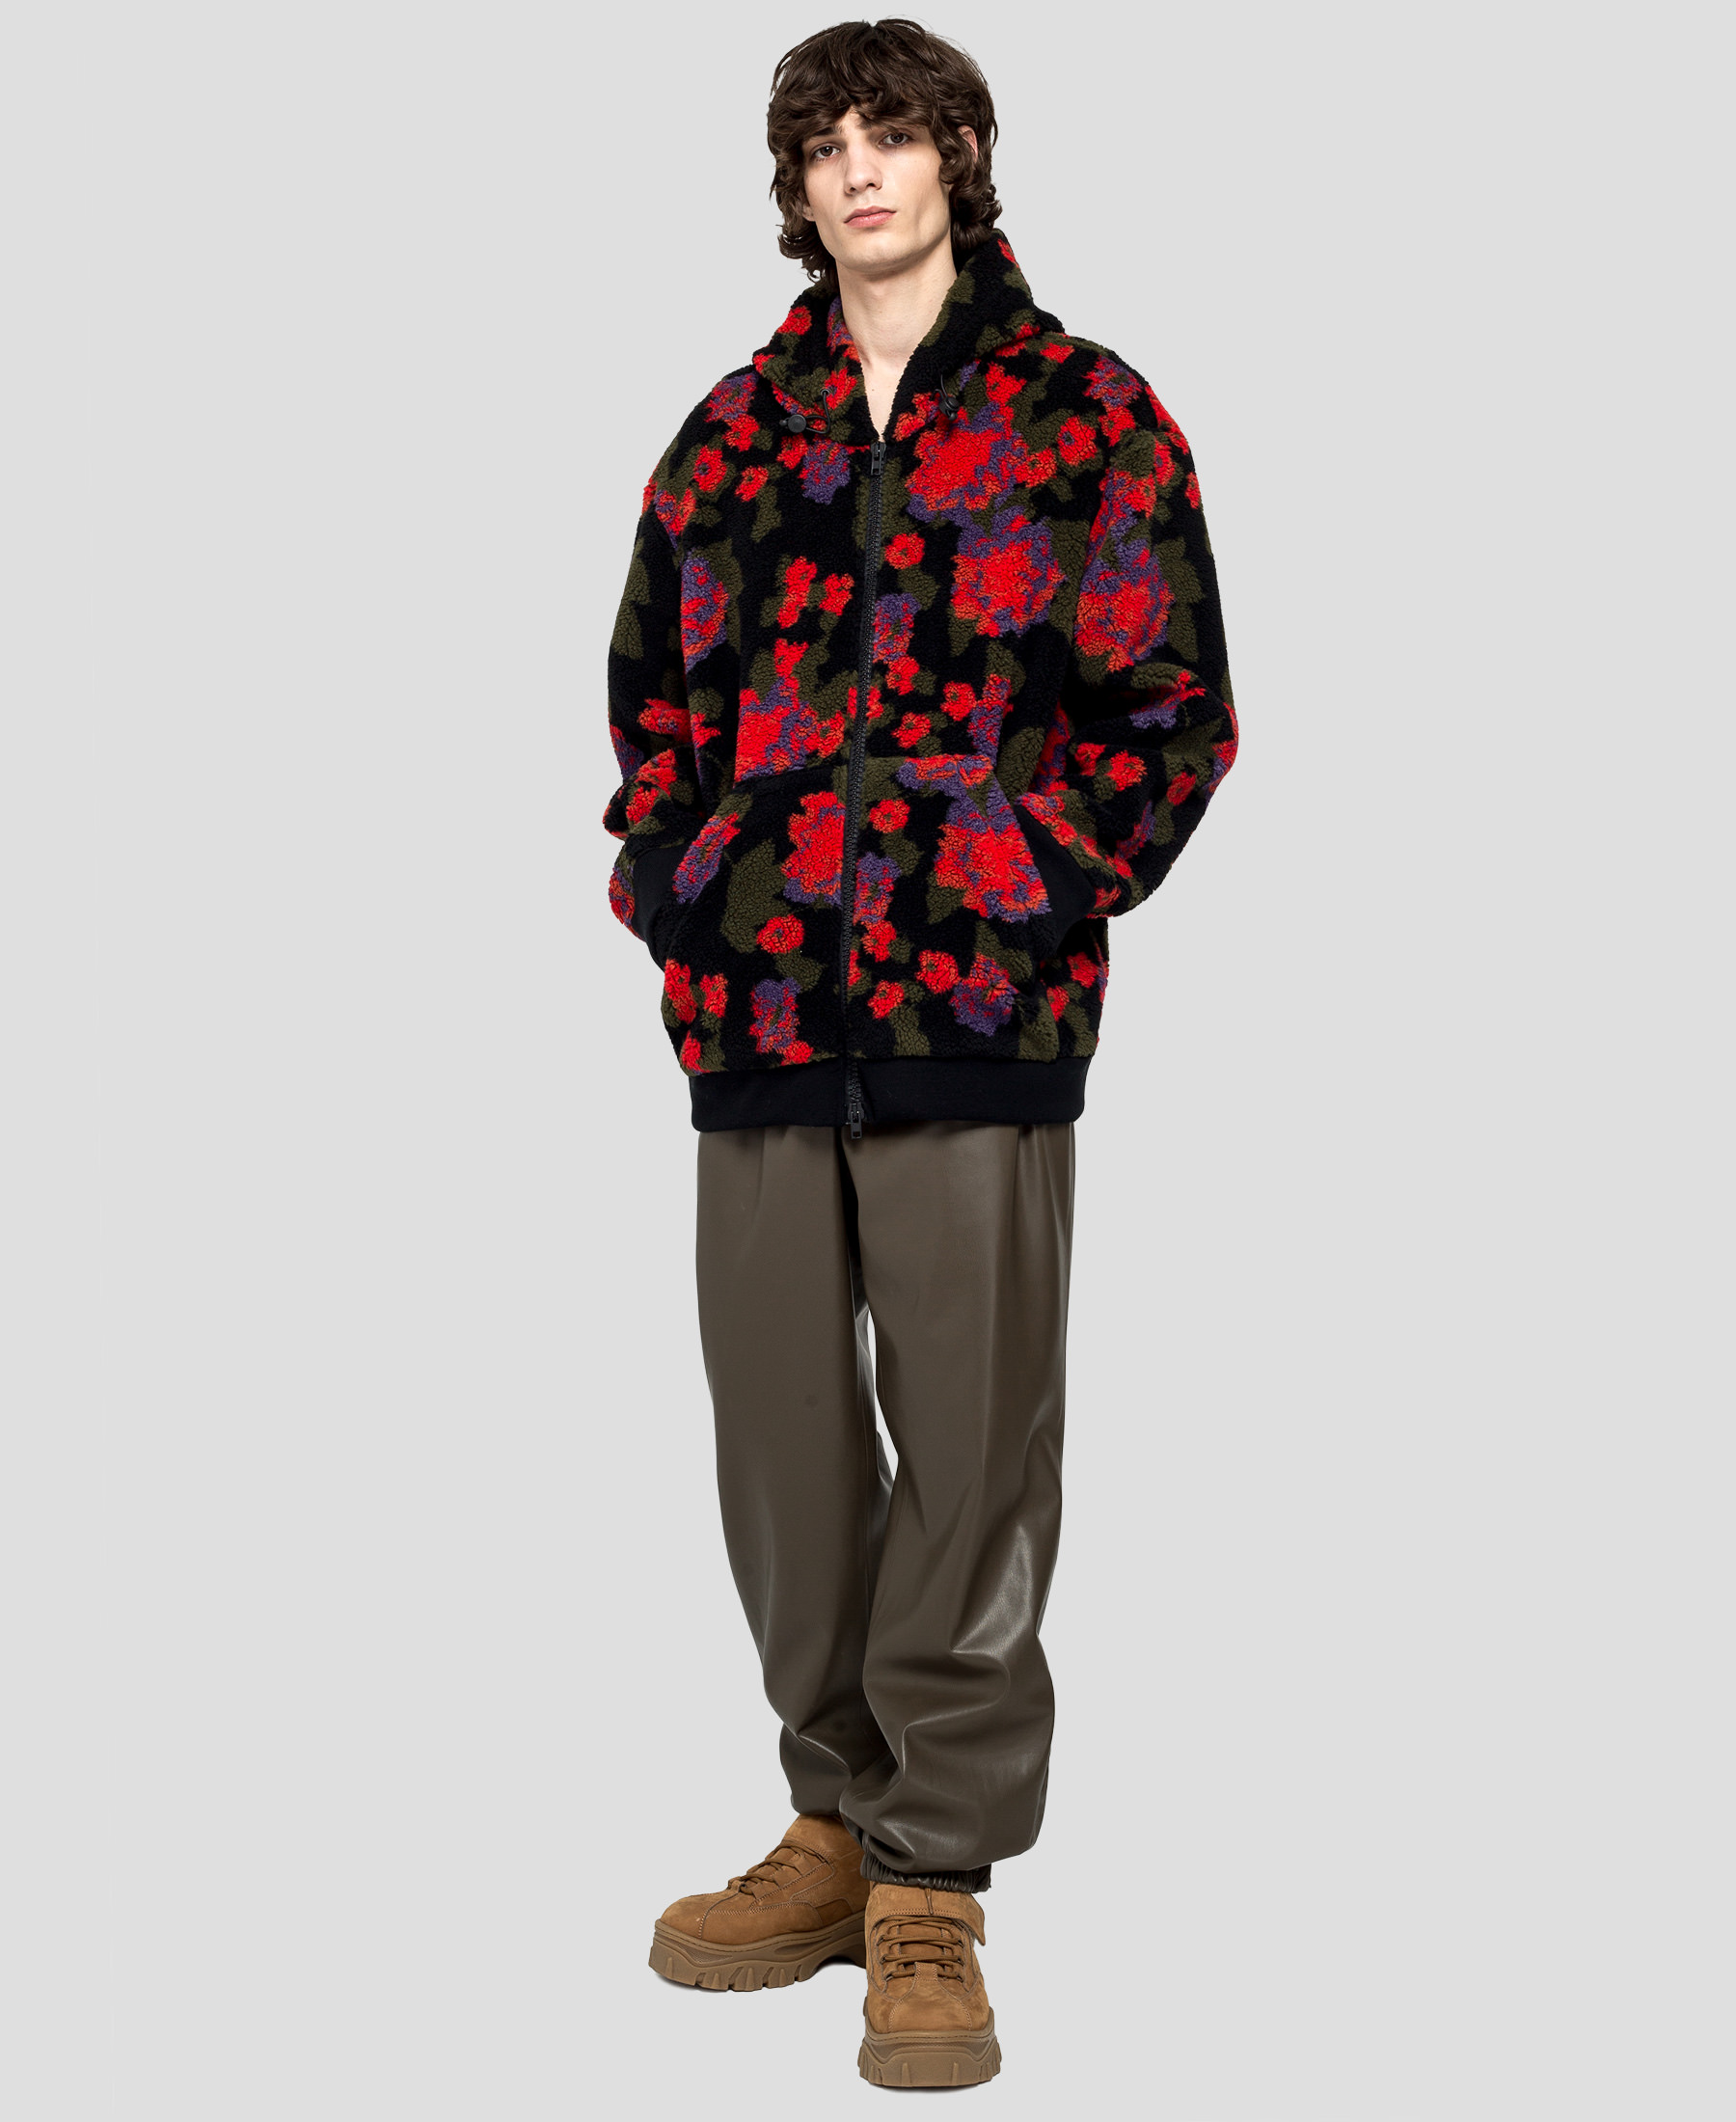 GIACCA-OVERSIZE-CON-STAMPA-FLORAL-MSGM_685